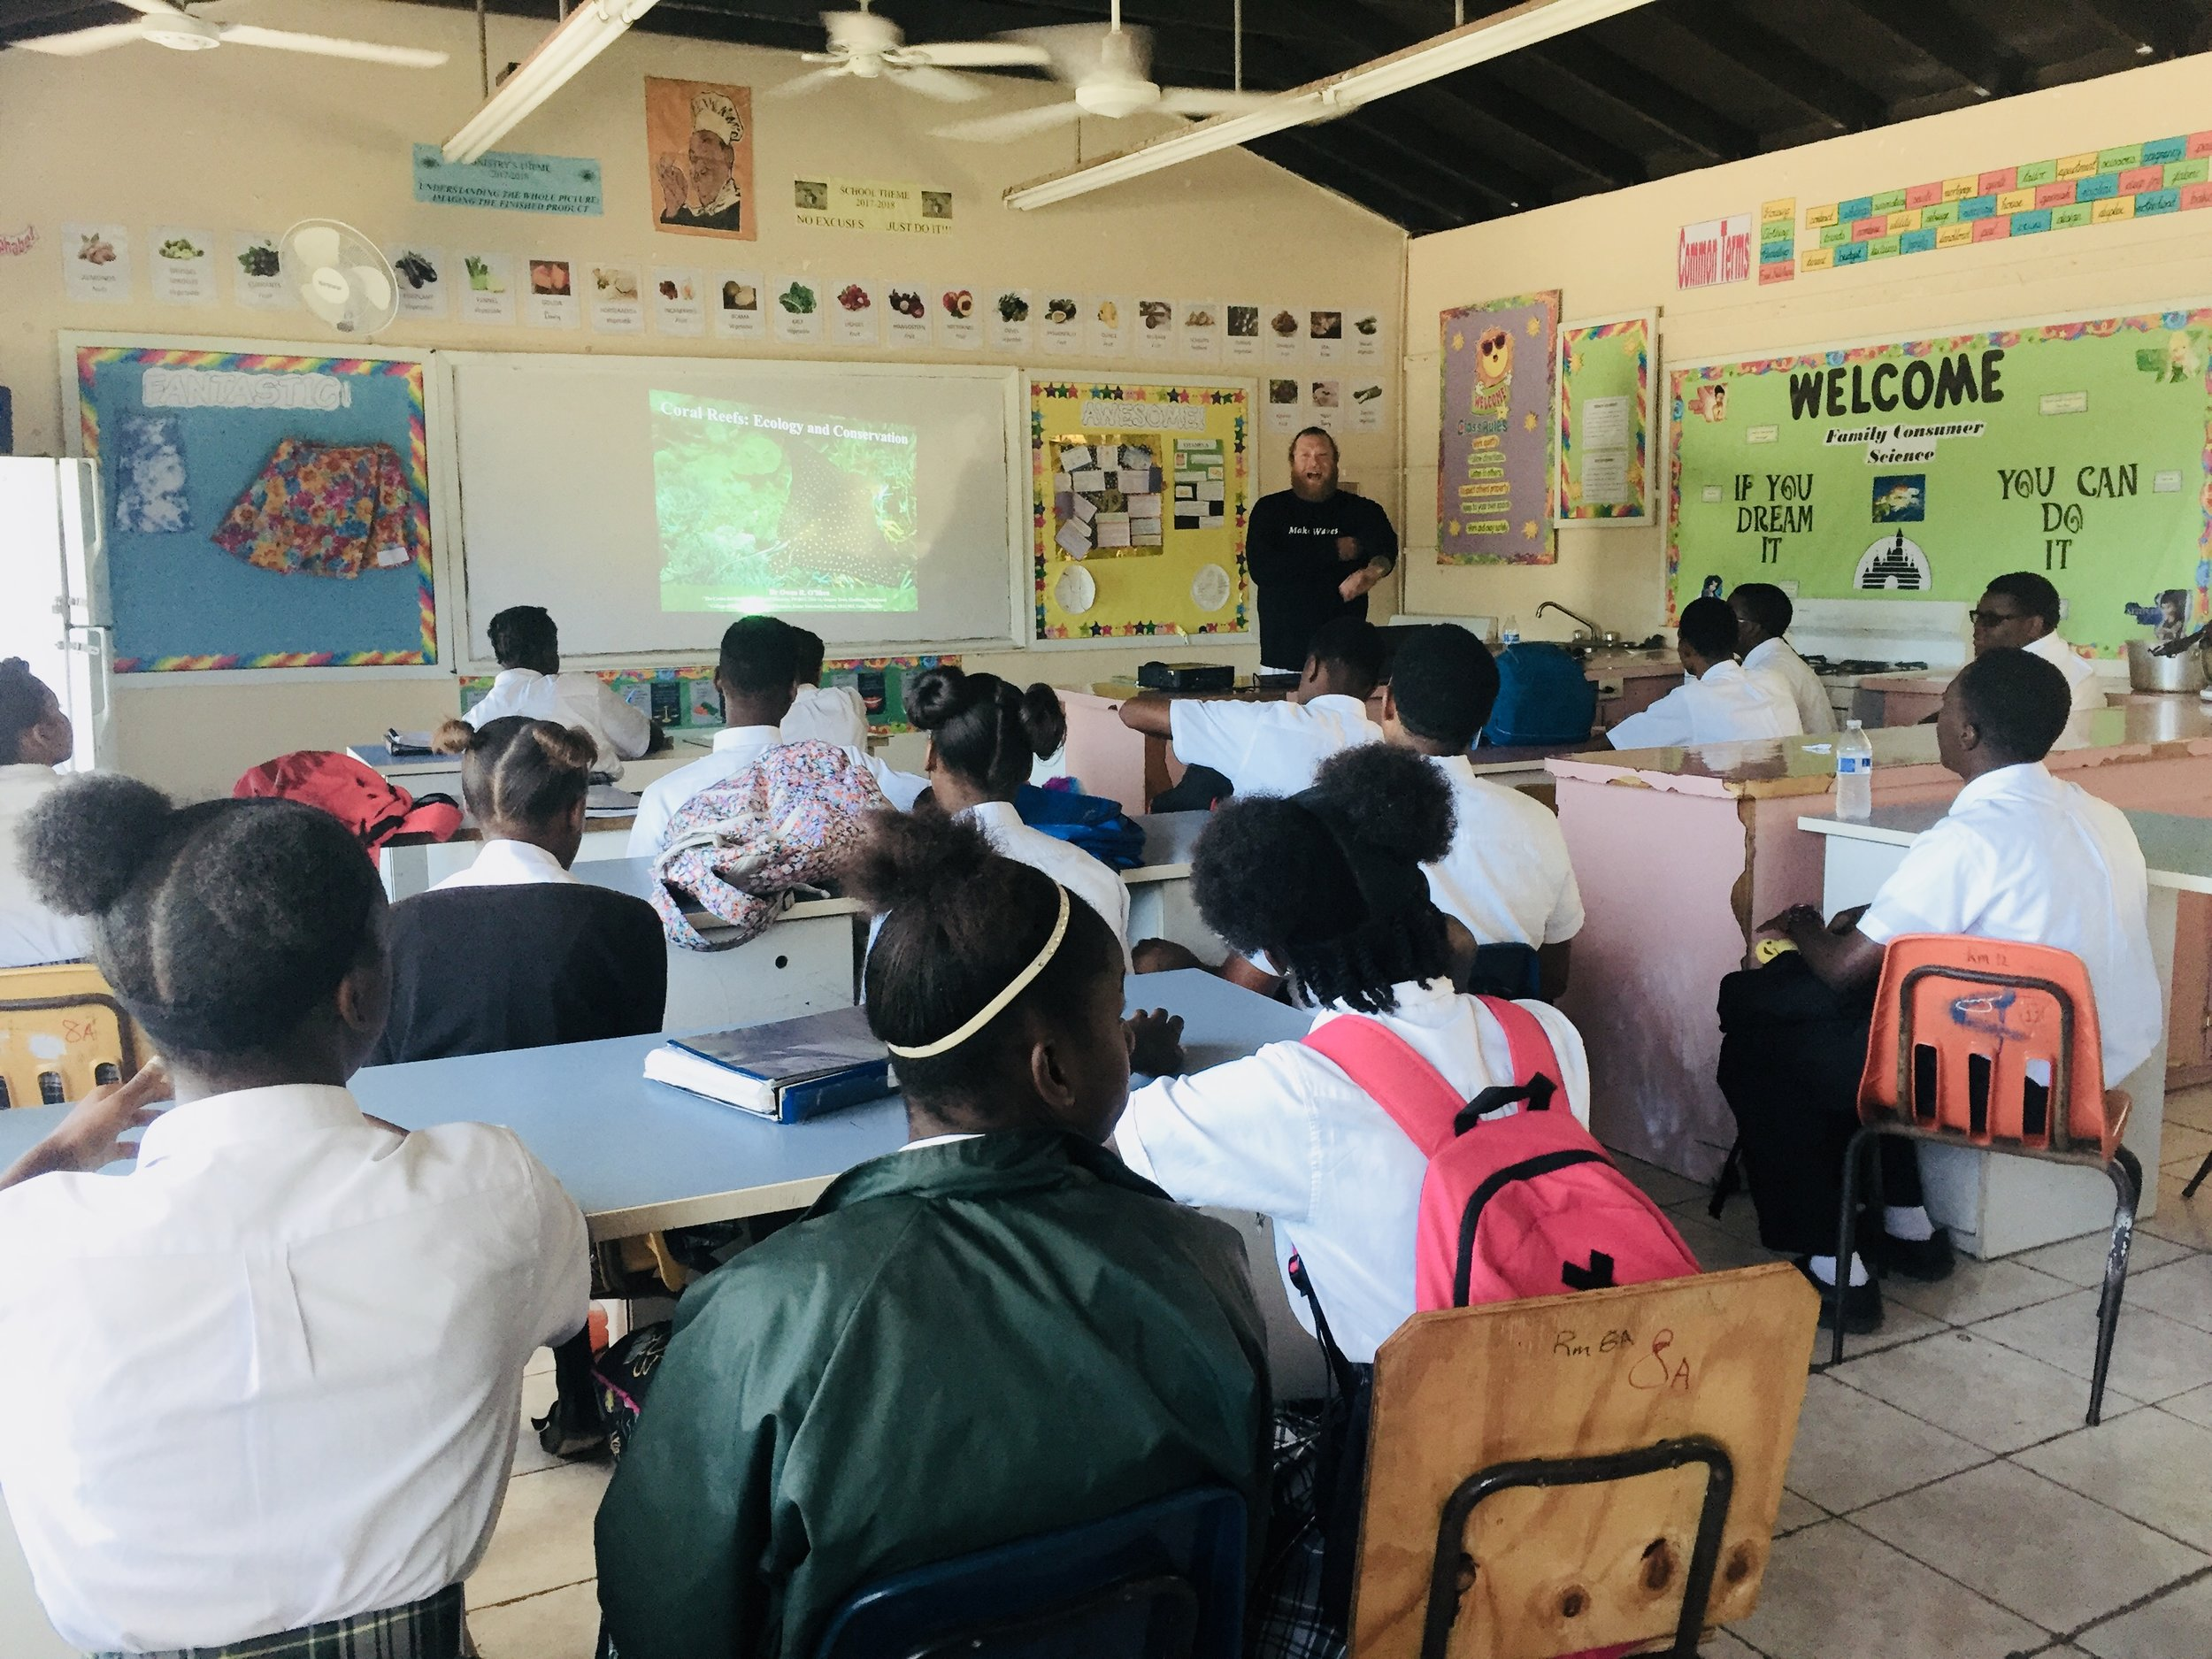 Dr. O'Shea delivered two lectures at Central Eleuthera High School, talking about coral reefs and their evolution and ecology